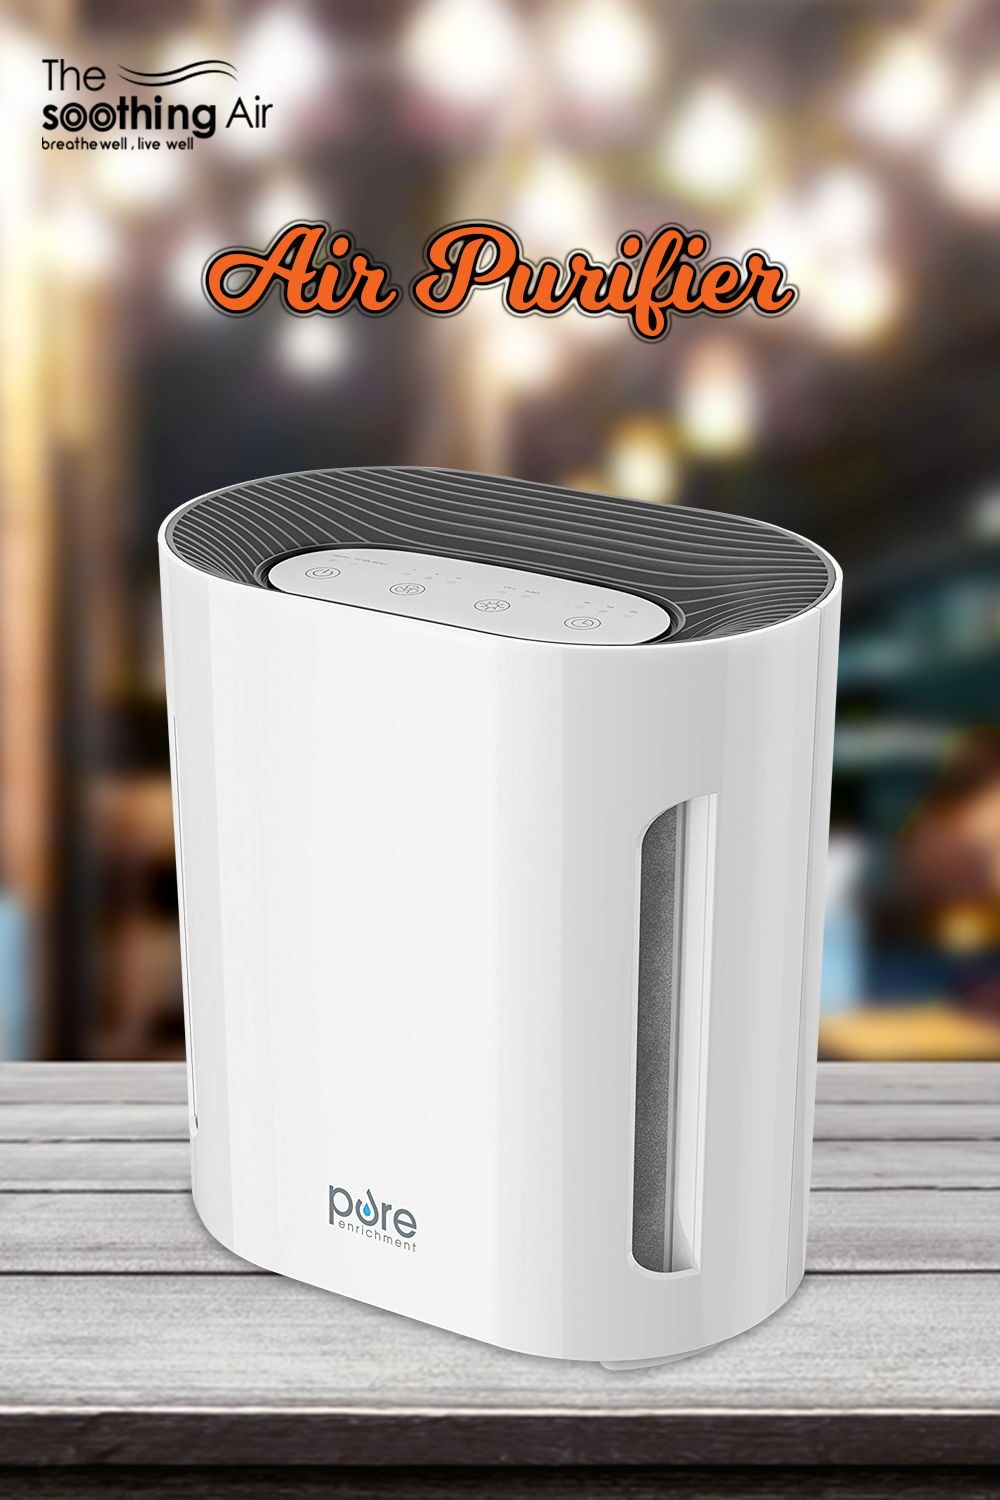 The Venta Airwasher for Allergy Sufferers Allergies